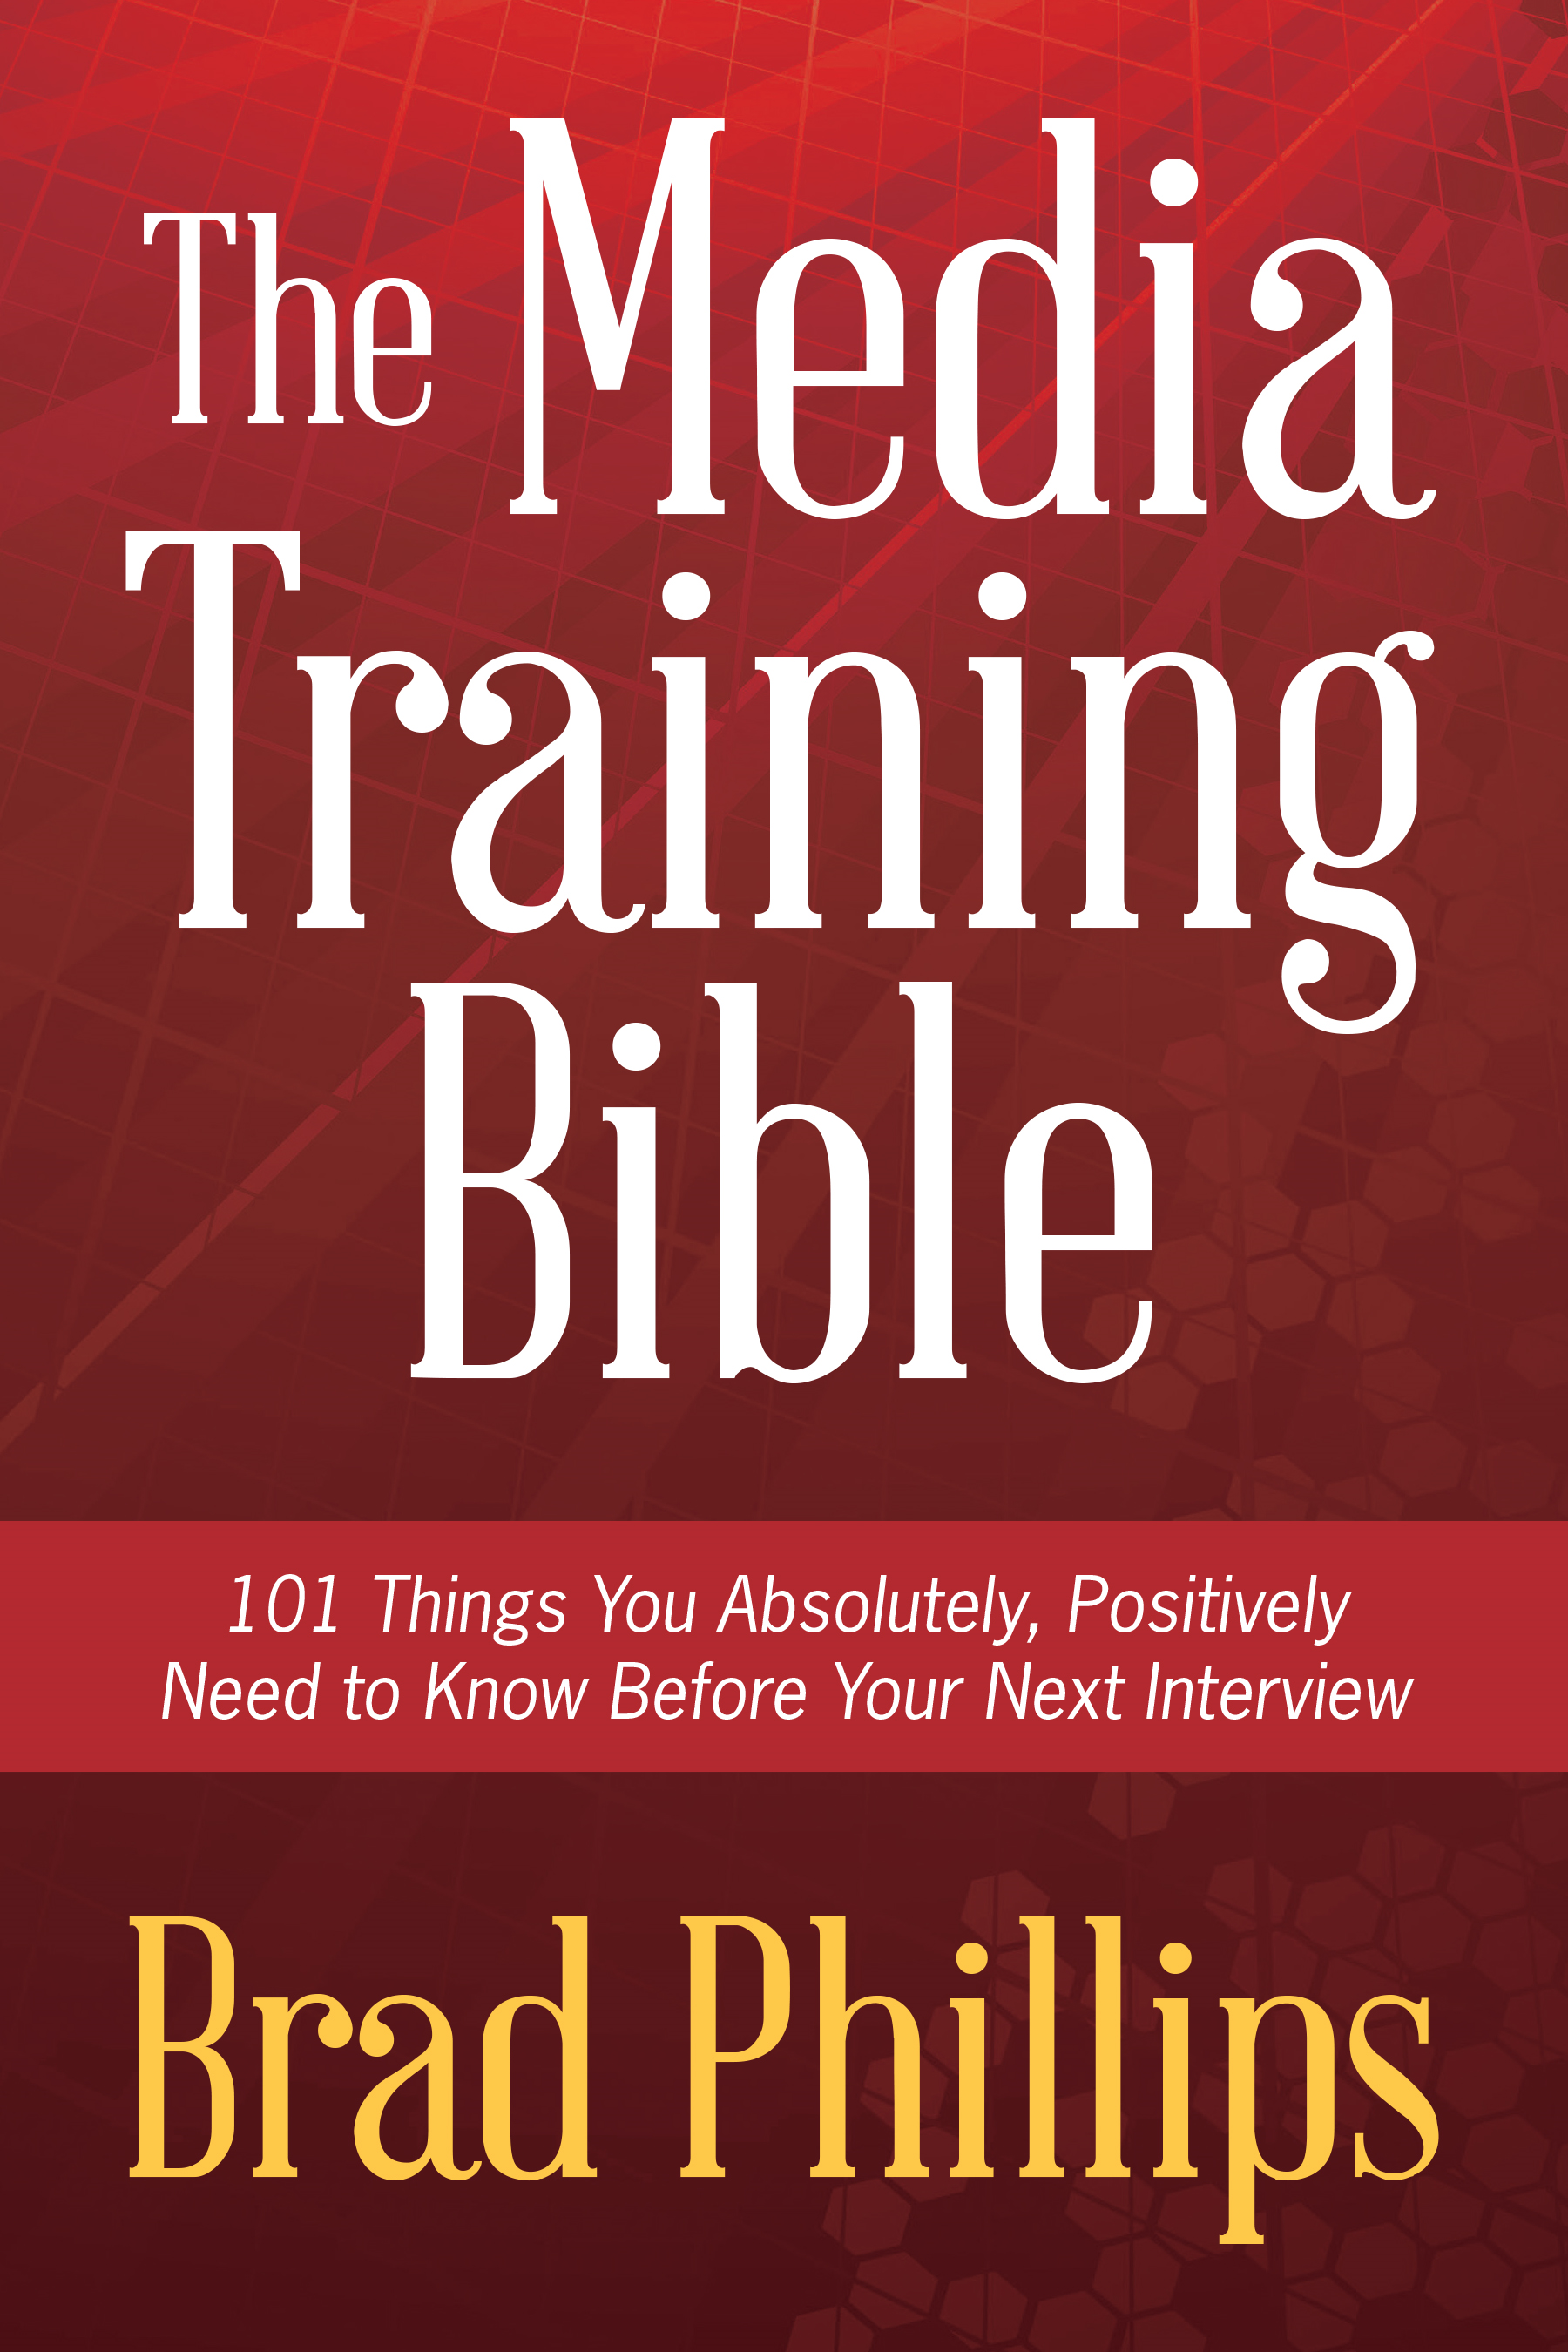 The Media Training Bible: 101 Things You Absolutely Positvely Need to Know Before Your Next Interview By: Brad Phillips